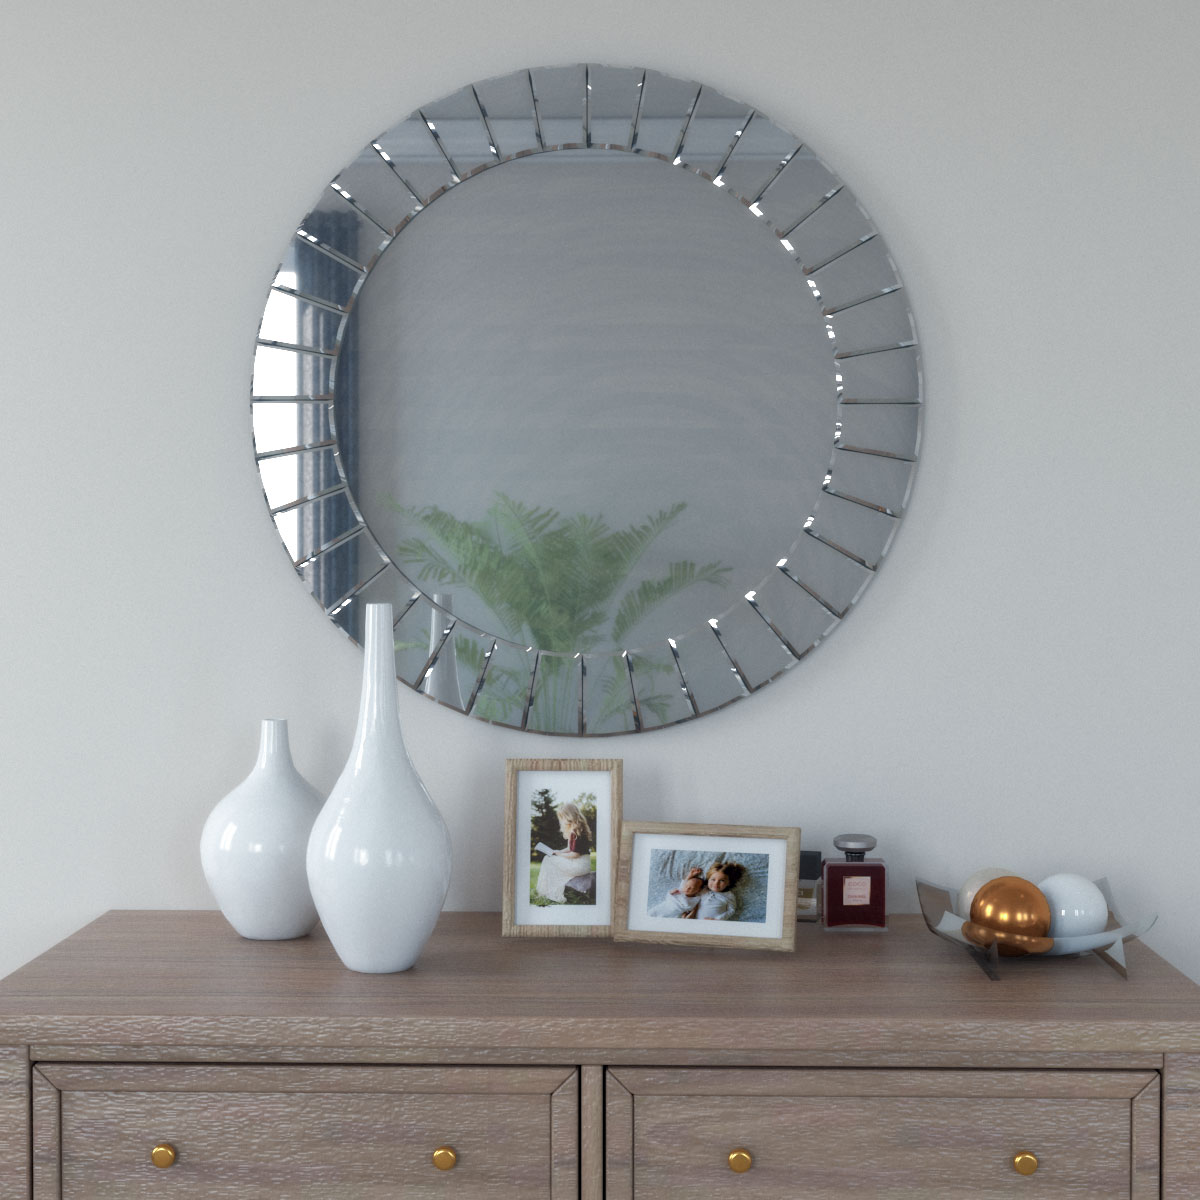 Glamour modern geometric art-deco style beveled frame round mirror